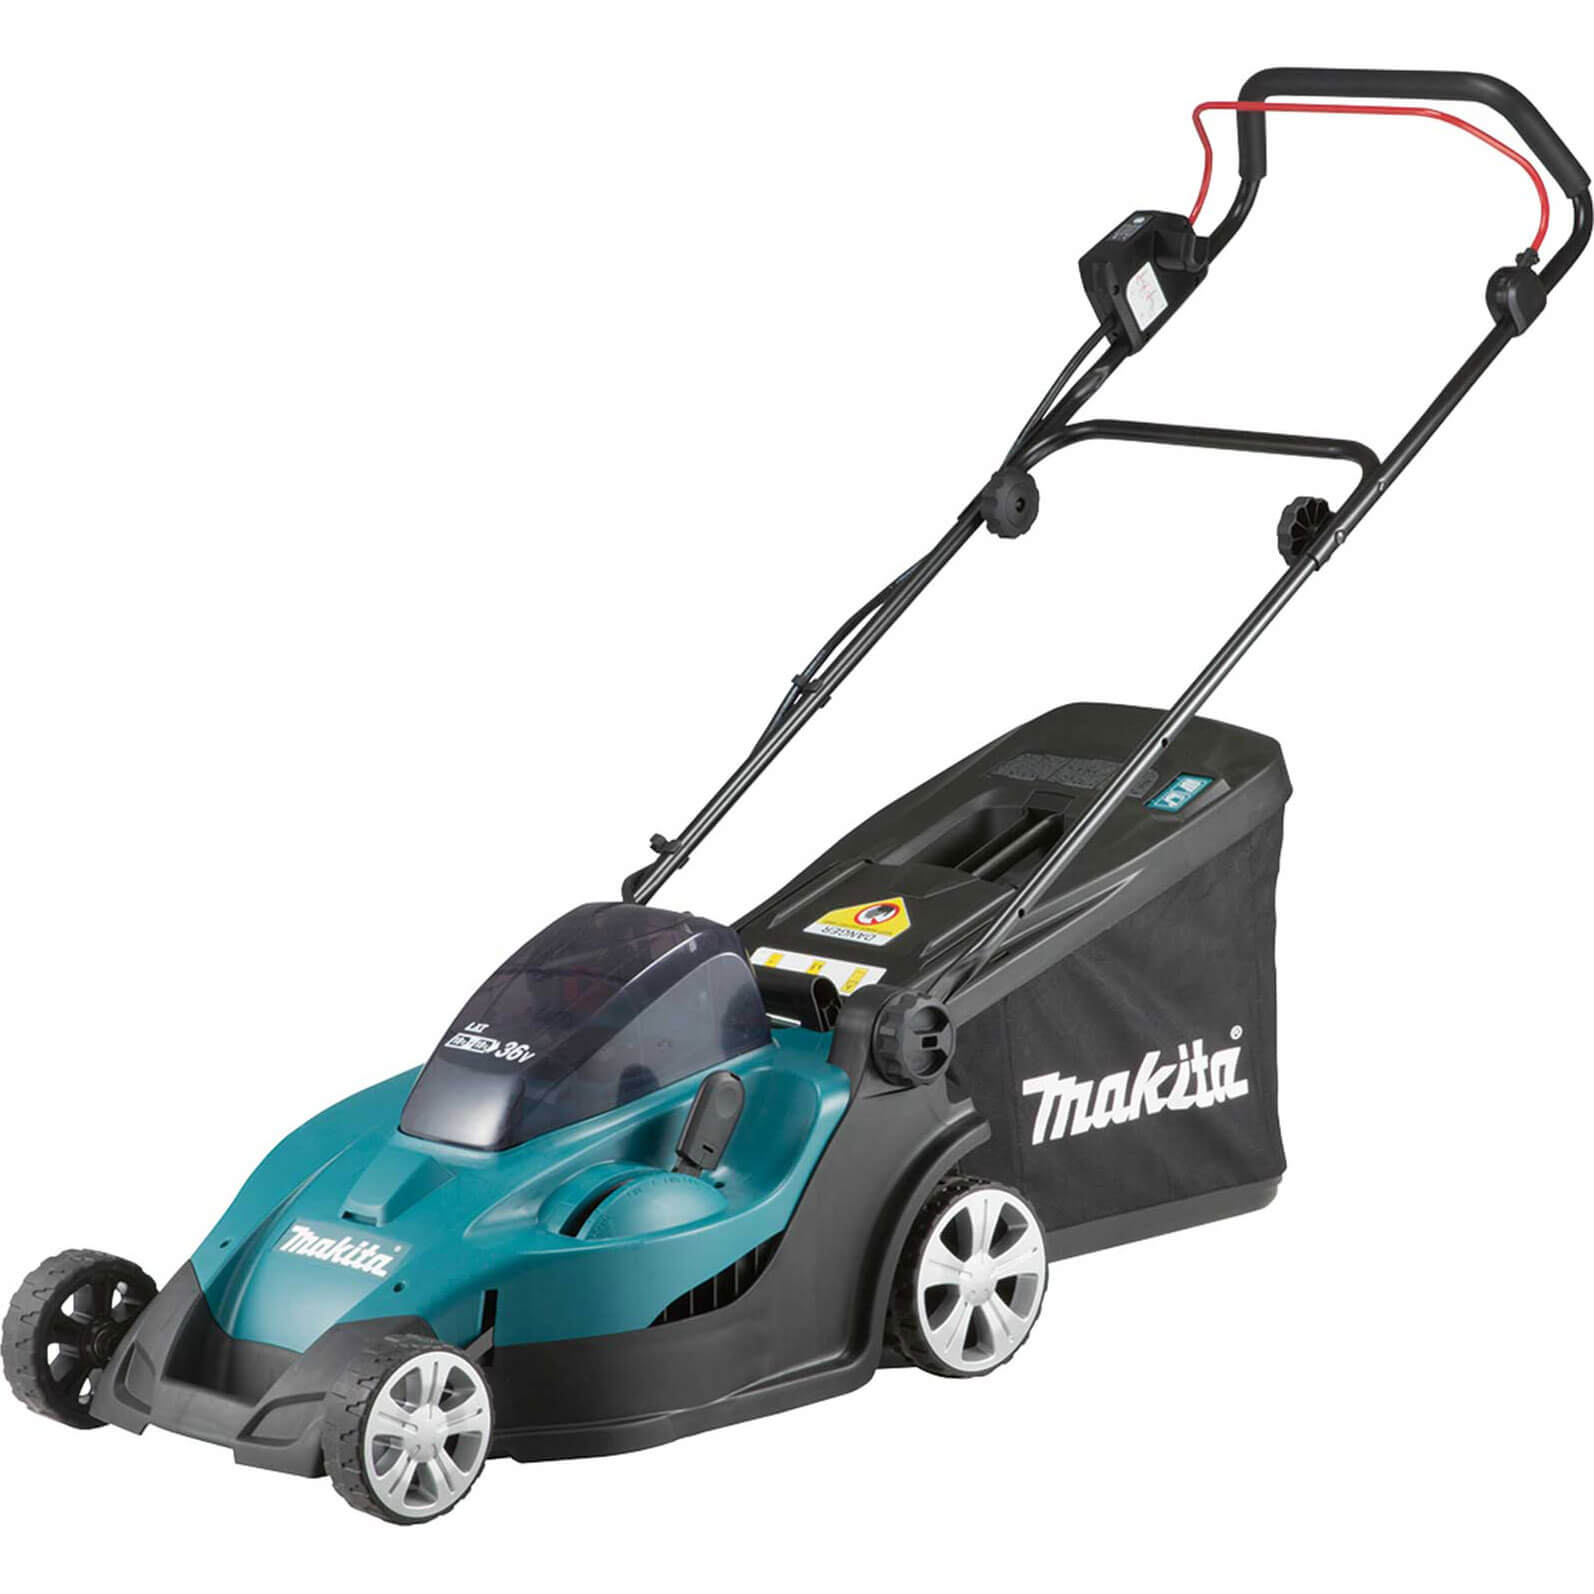 Image of Makita DLM431 Twin 18v Cordless Rotary Lawnmower 430mm No Batteries No Charger